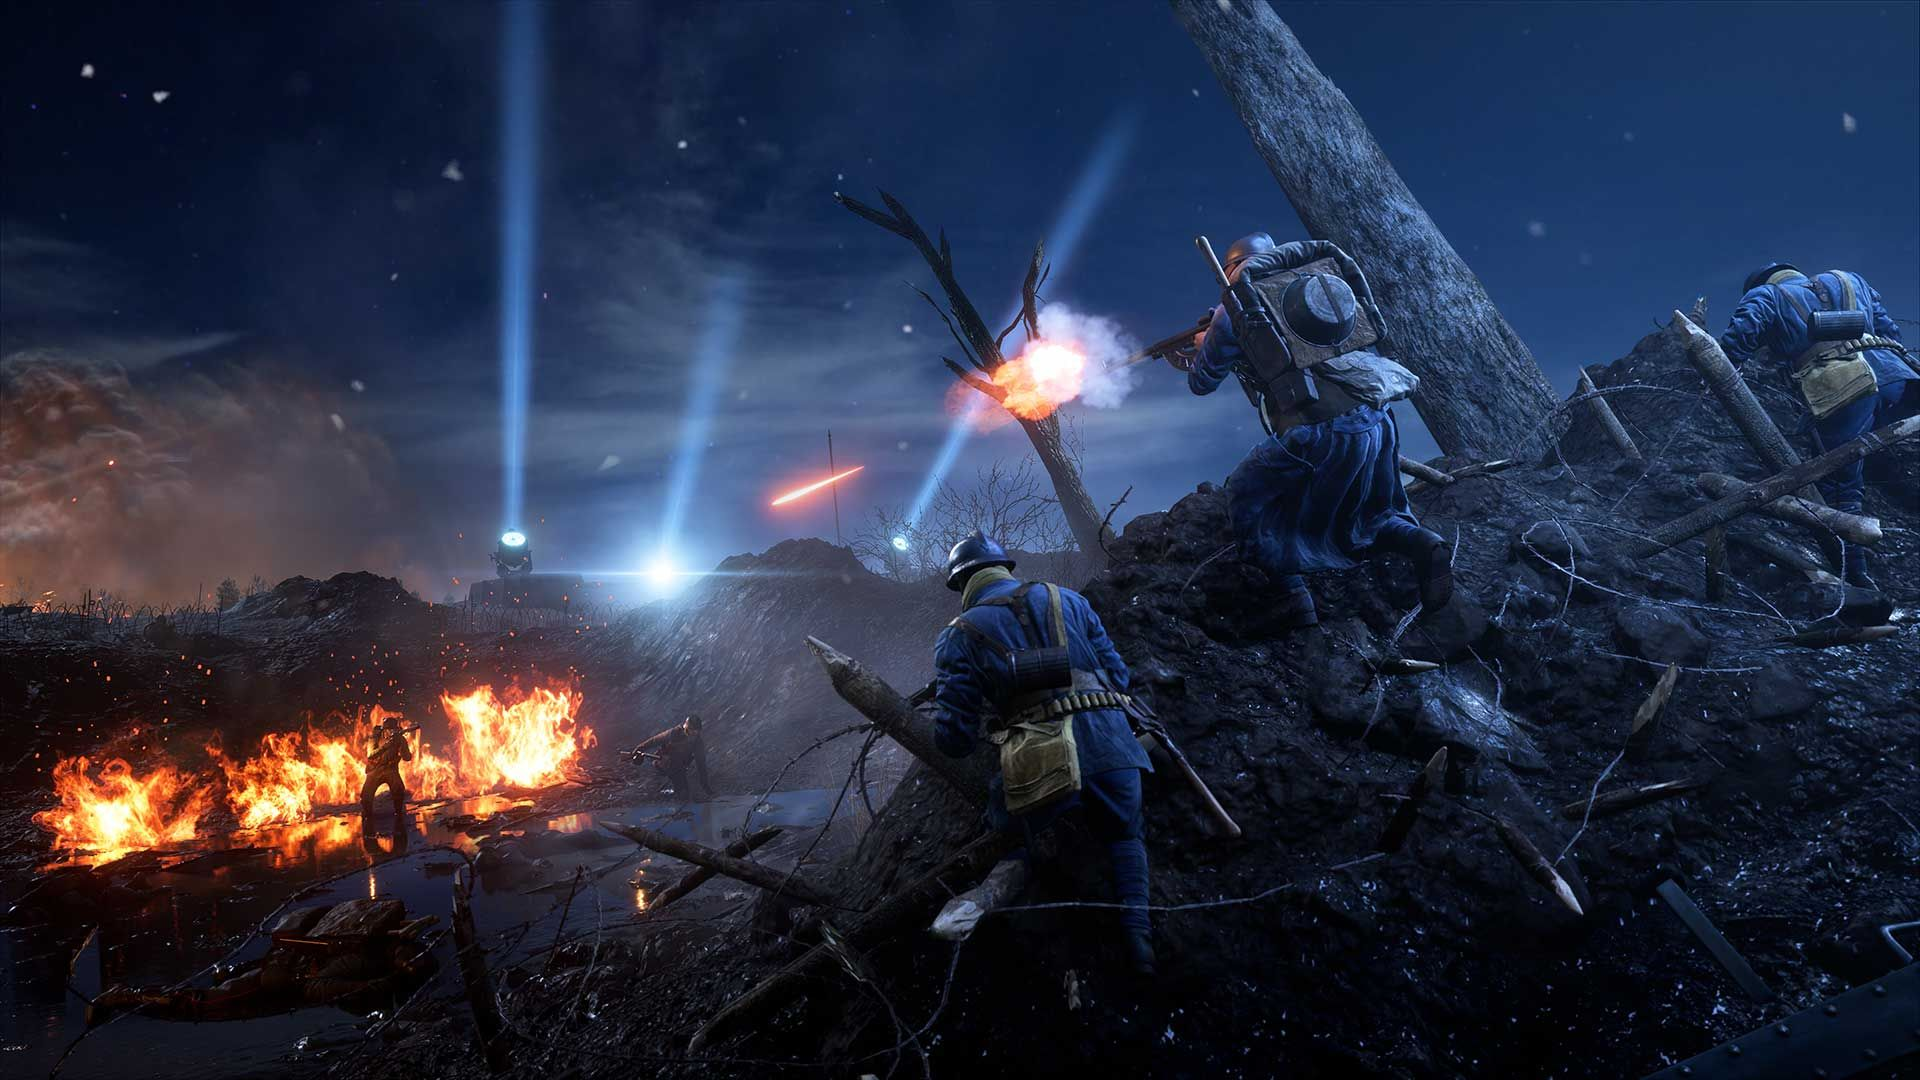 Battlefield 5 Will Reportedly be Set in World War II